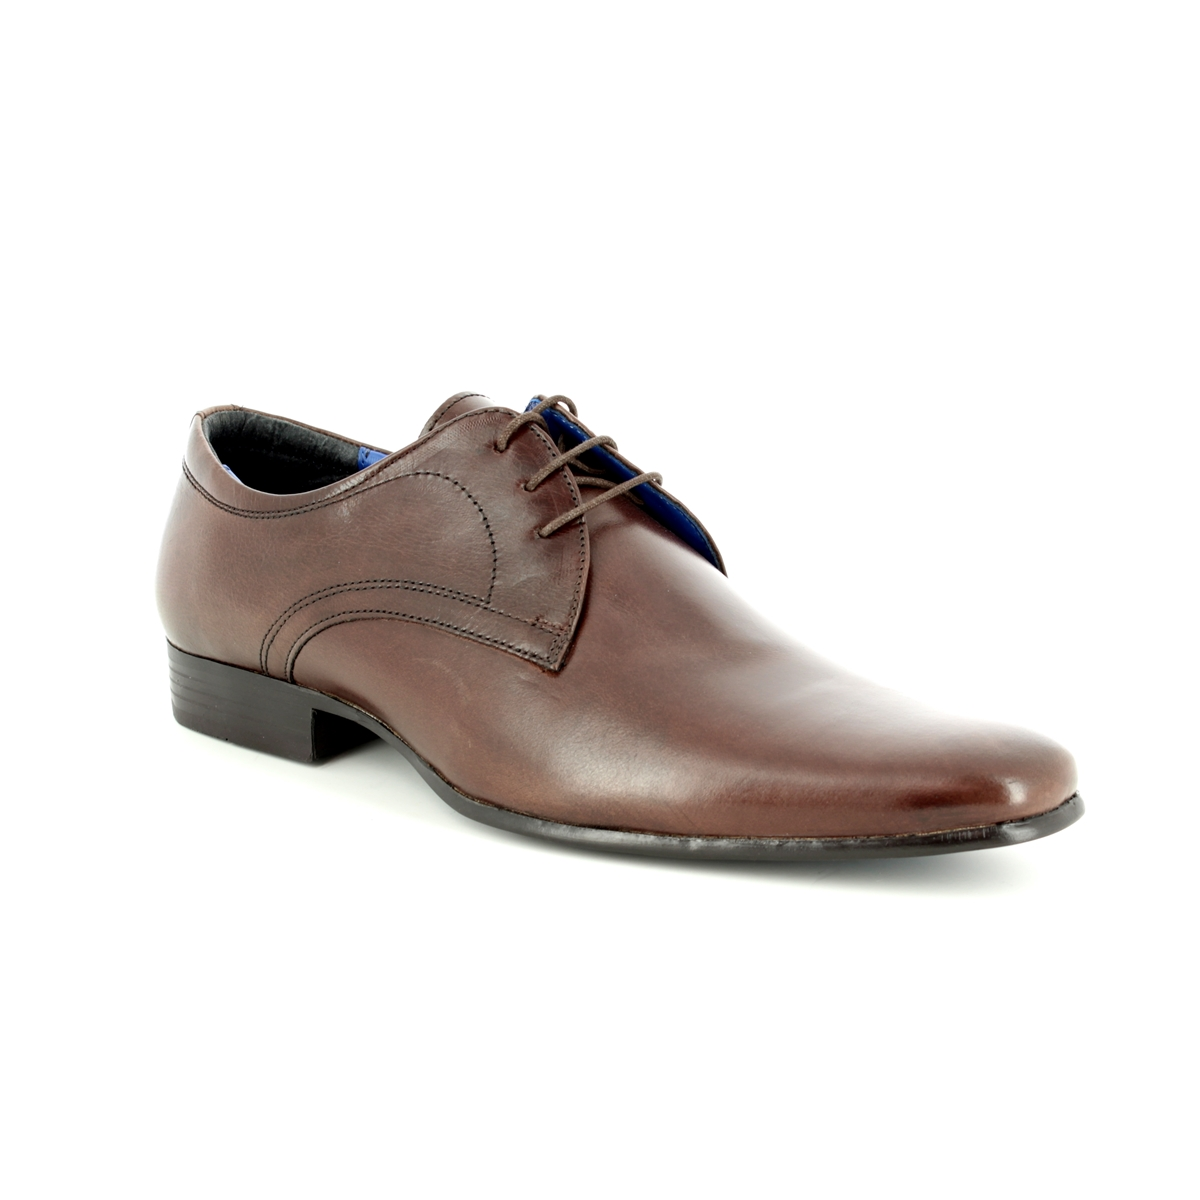 33bbc2d832a Red Tape Formal Shoes - Brown - 7206/20 LEVEN